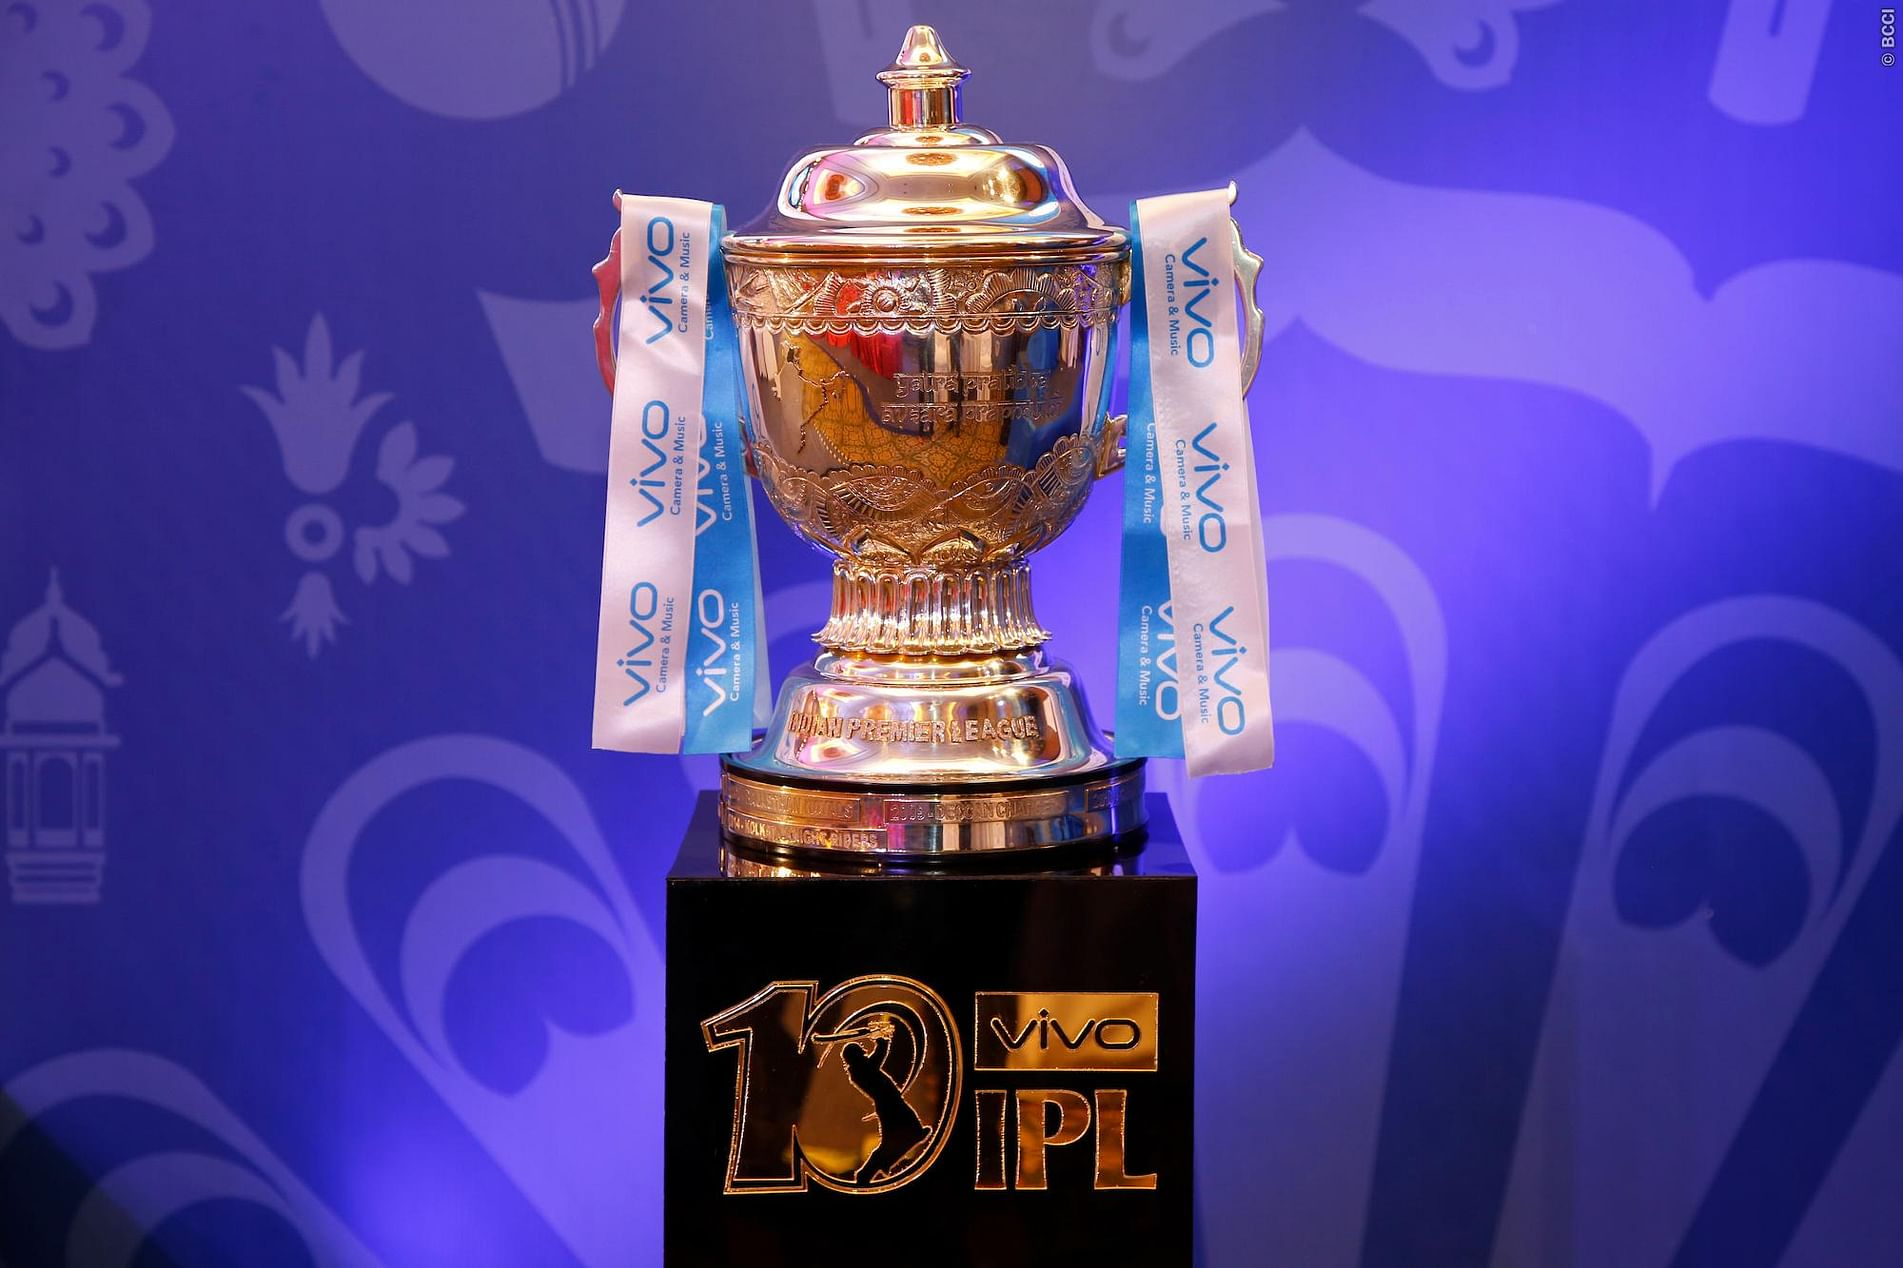 In view of rising coronavirus cases in India, BCCI on Tuesday announced that the IPL 2021 has been suspended indefinitely.